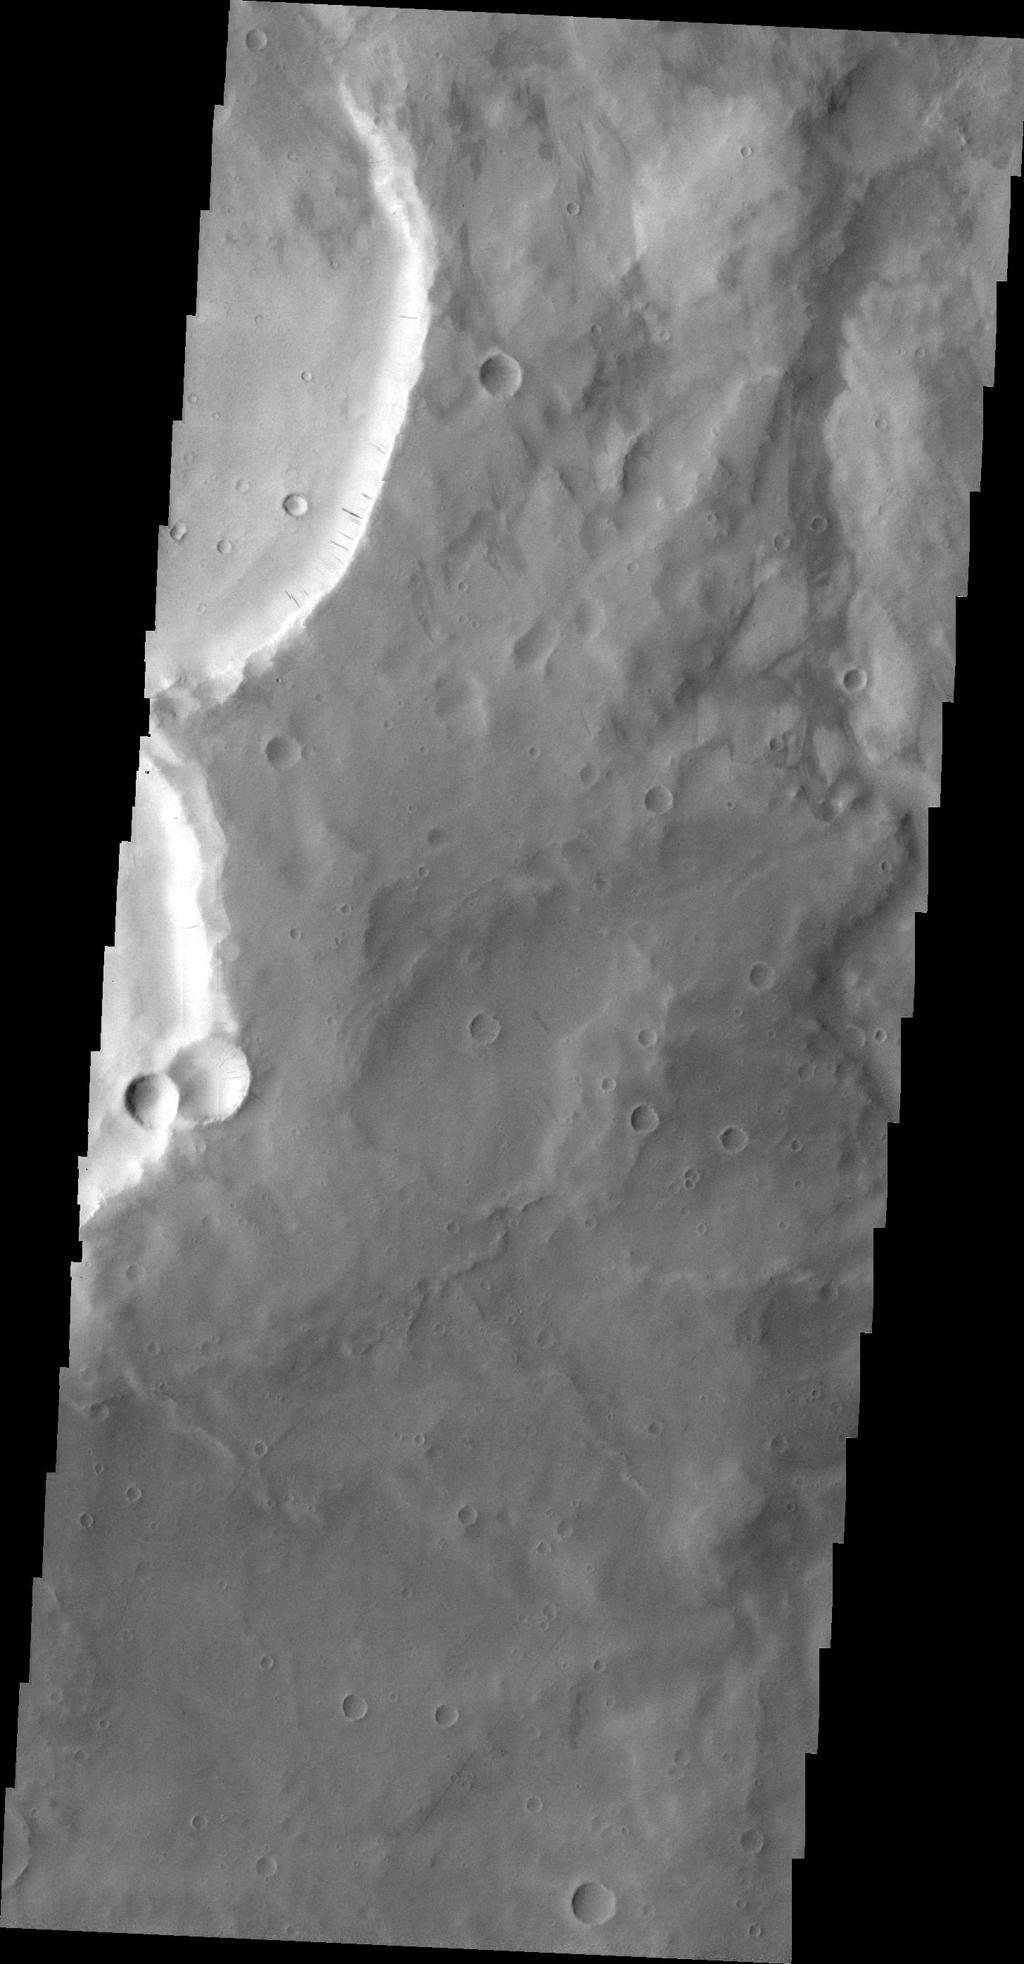 The dark slope streaks in this image are located on the rim of an unnamed crater east of Schiaparelli Crater taken by NASA's 2001 Mars Odyssey spacecraft.